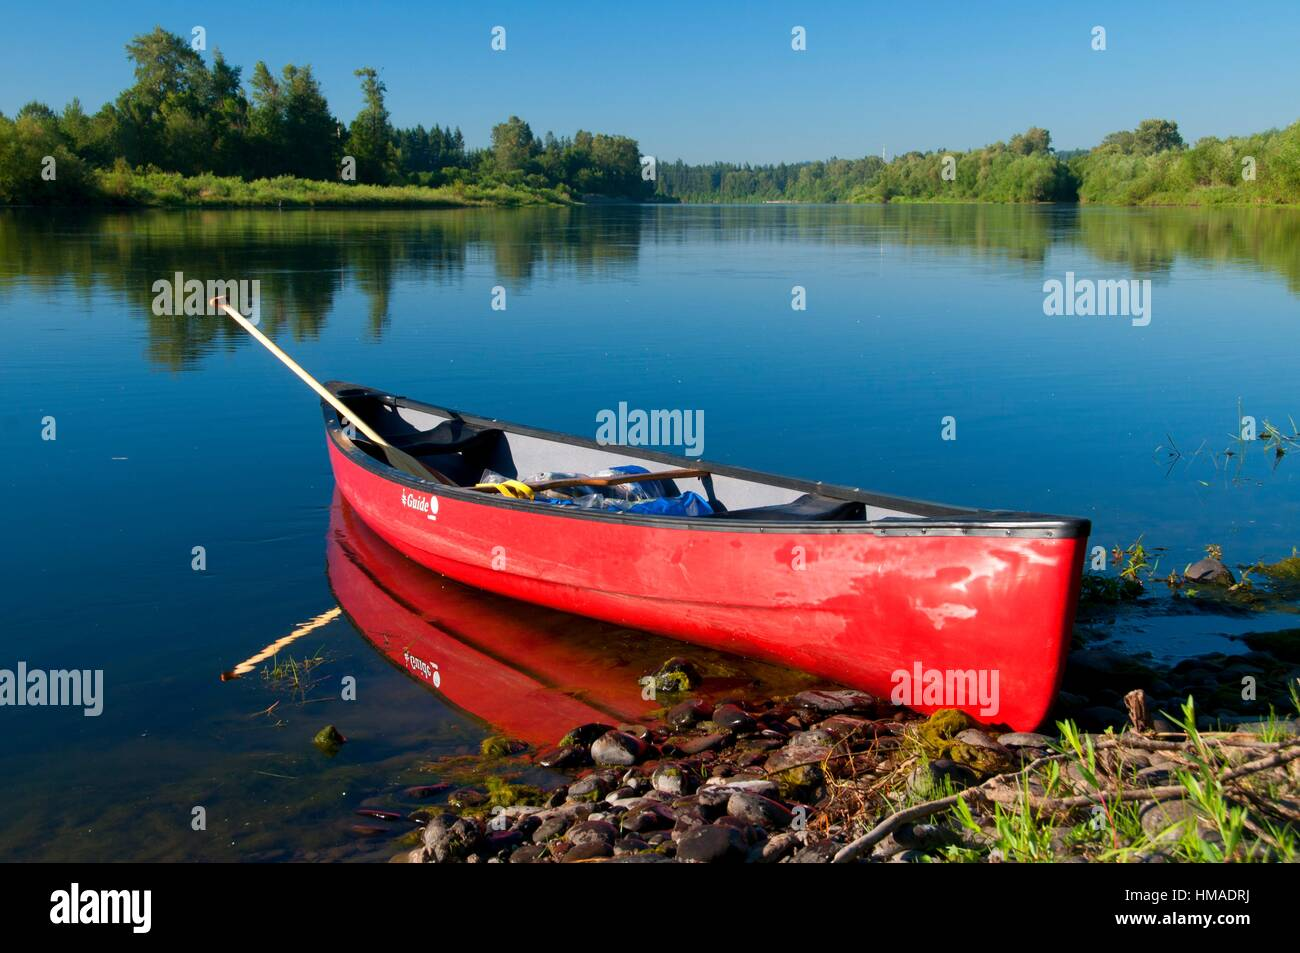 Canoe on the Willamette River, Willamette River Greenway, Marion County, Oregon. - Stock Image